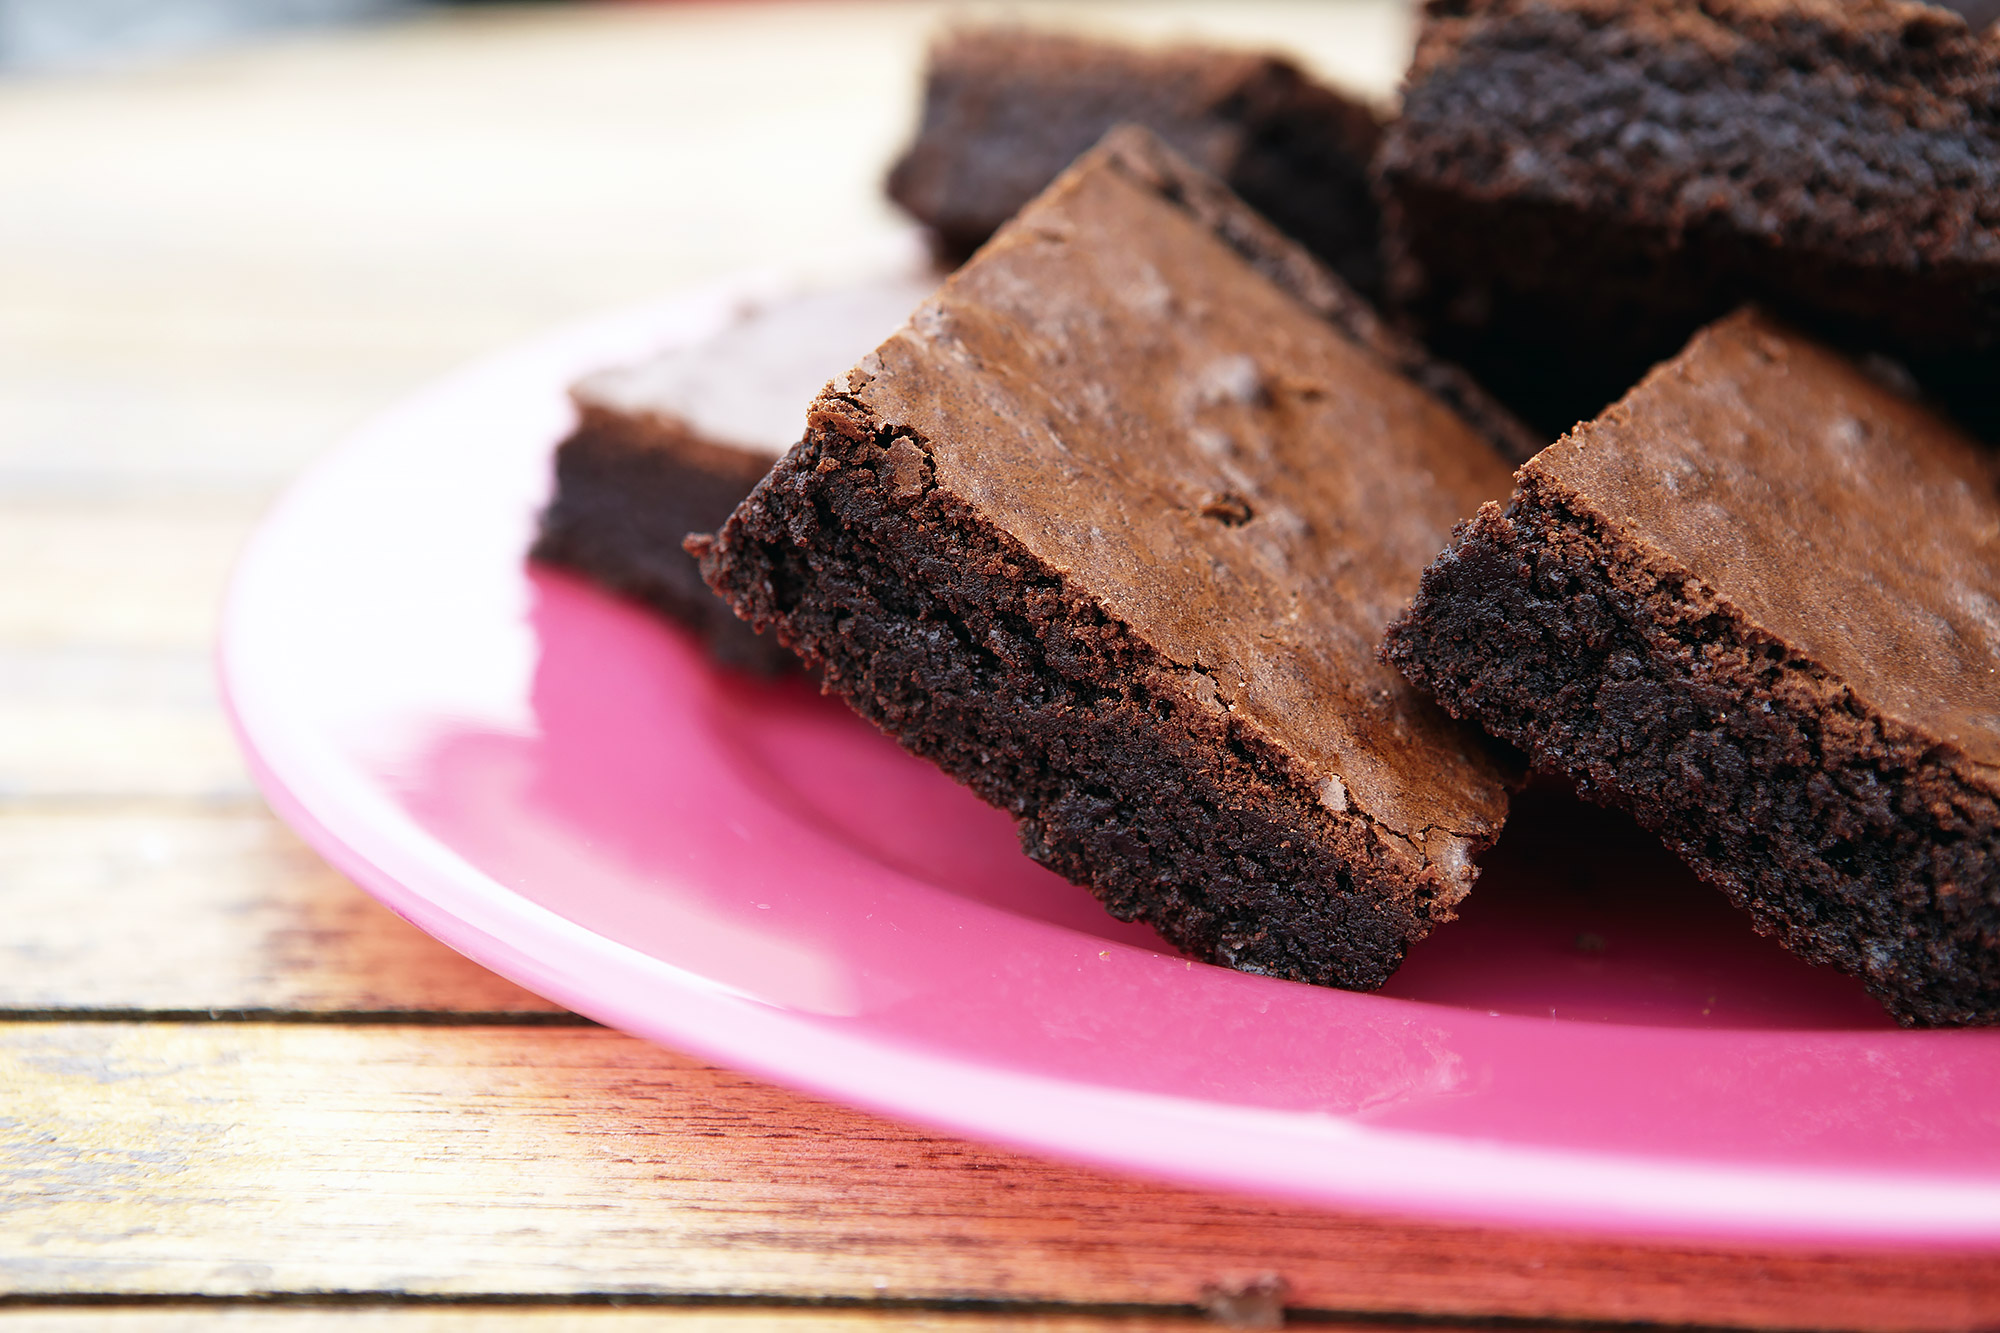 Mom Claims She Used Breast Milk to Make Brownies for Unsuspecting Families at School Bake Sale